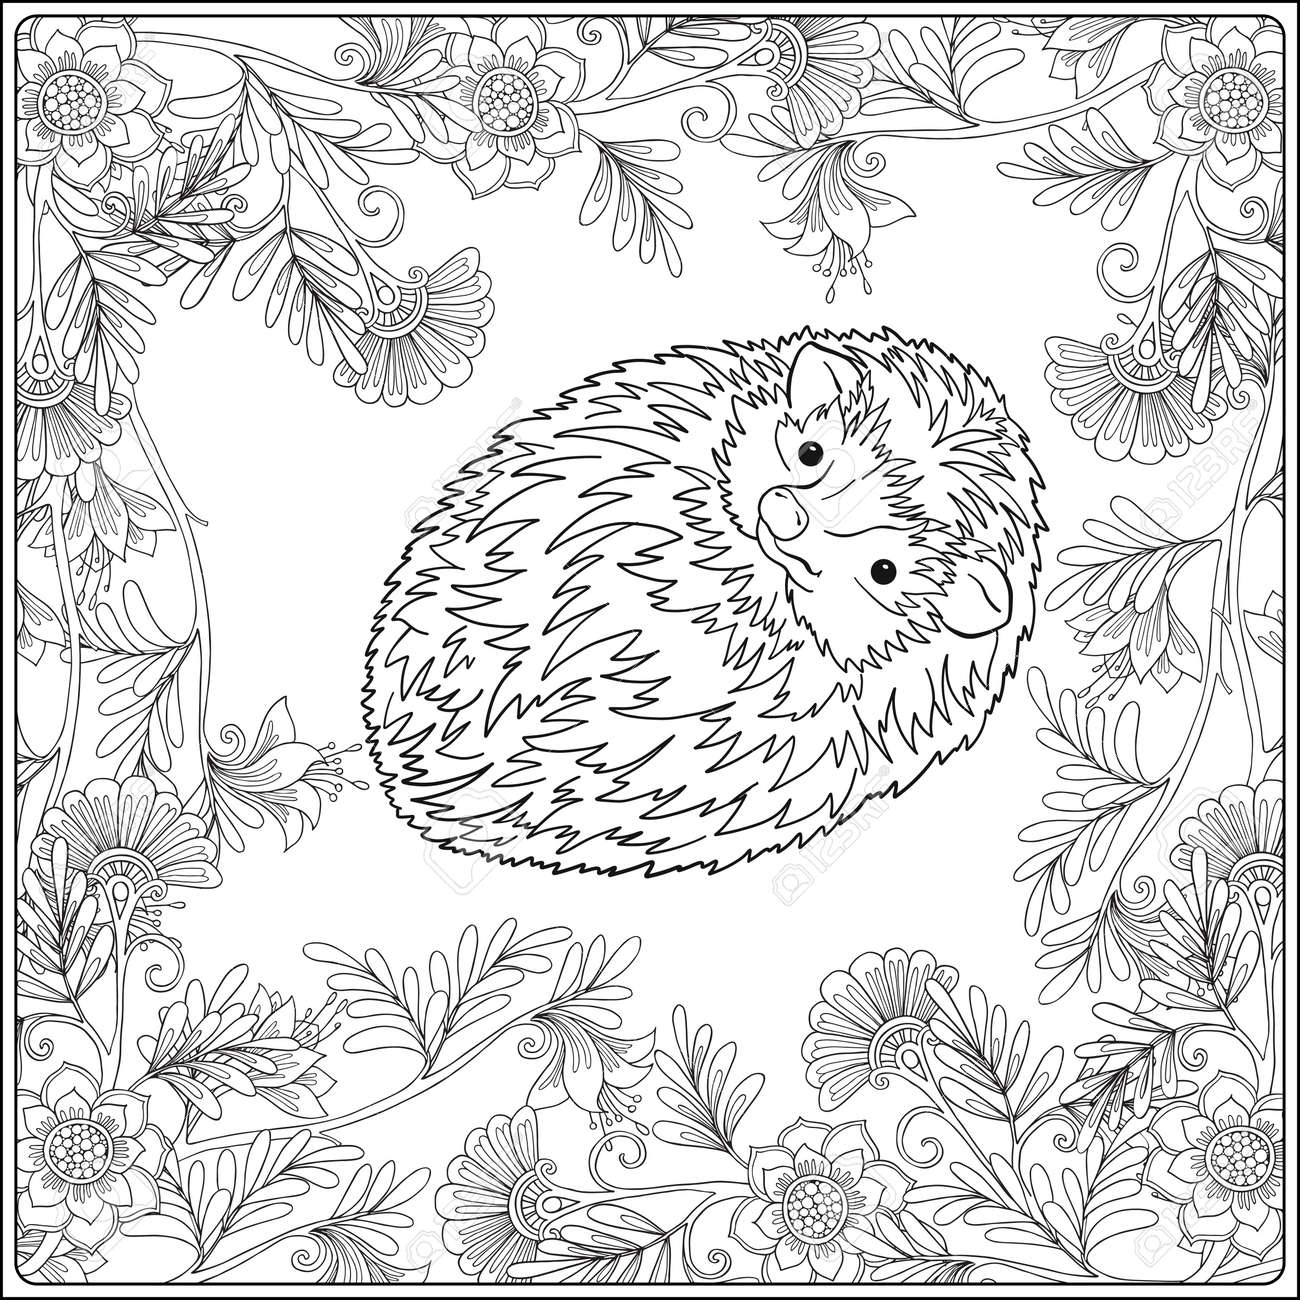 Coloring Page With Lovely Hedgehog In The Garden Book For Adult And Older Children